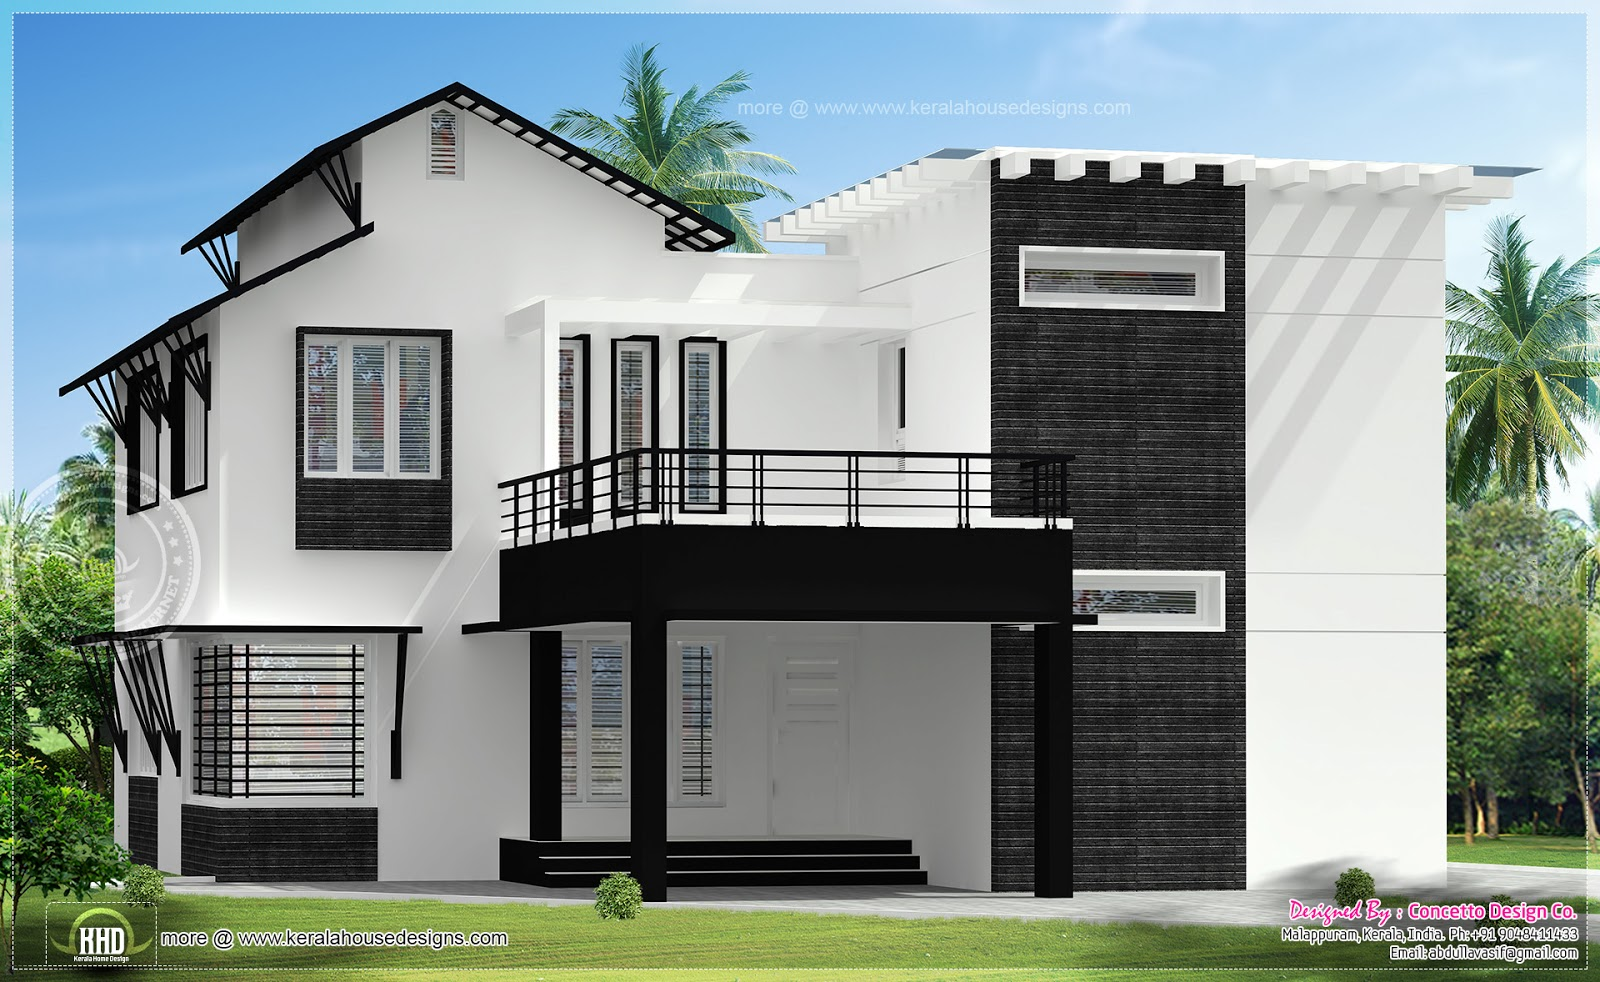 Contemporary House Elevation Single Floor: 5 Different House Exteriors By Concetto Design